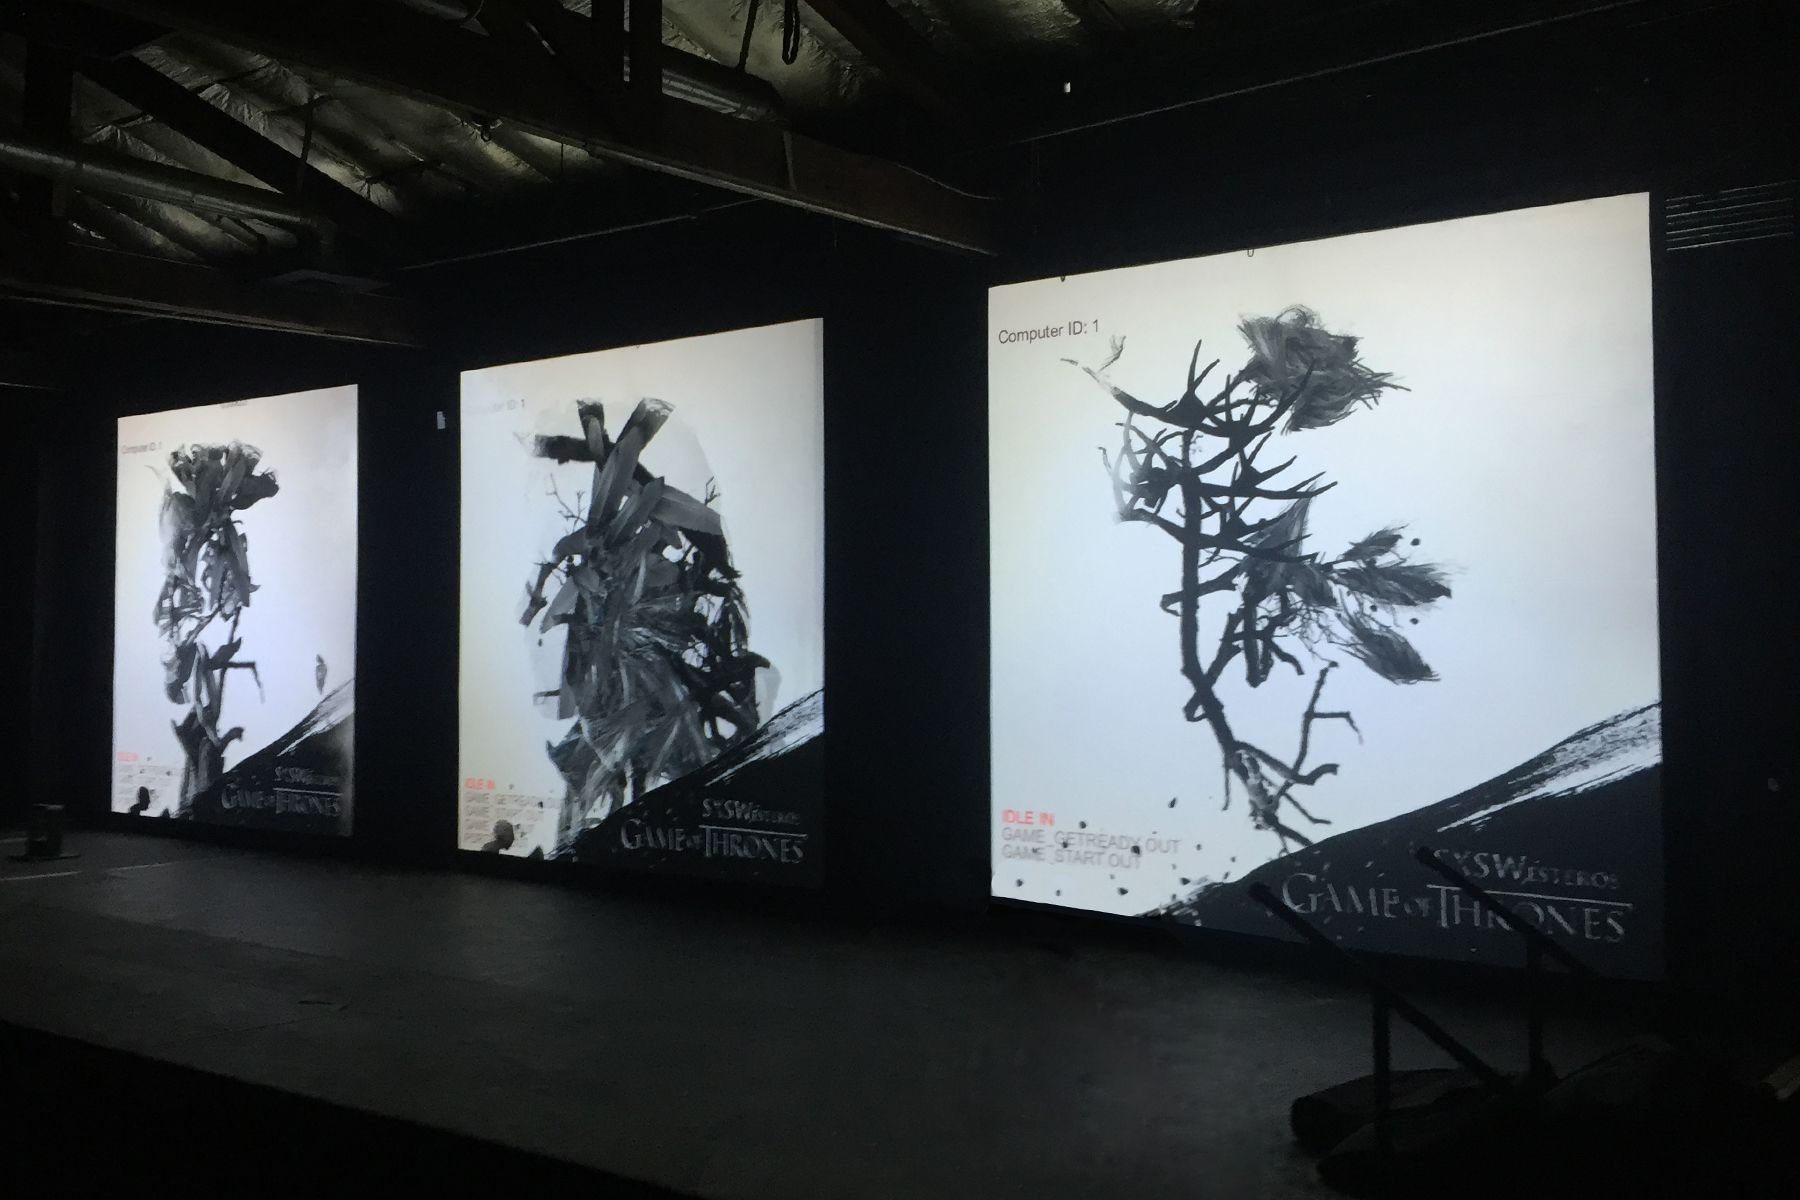 Game of Thrones interactive experience